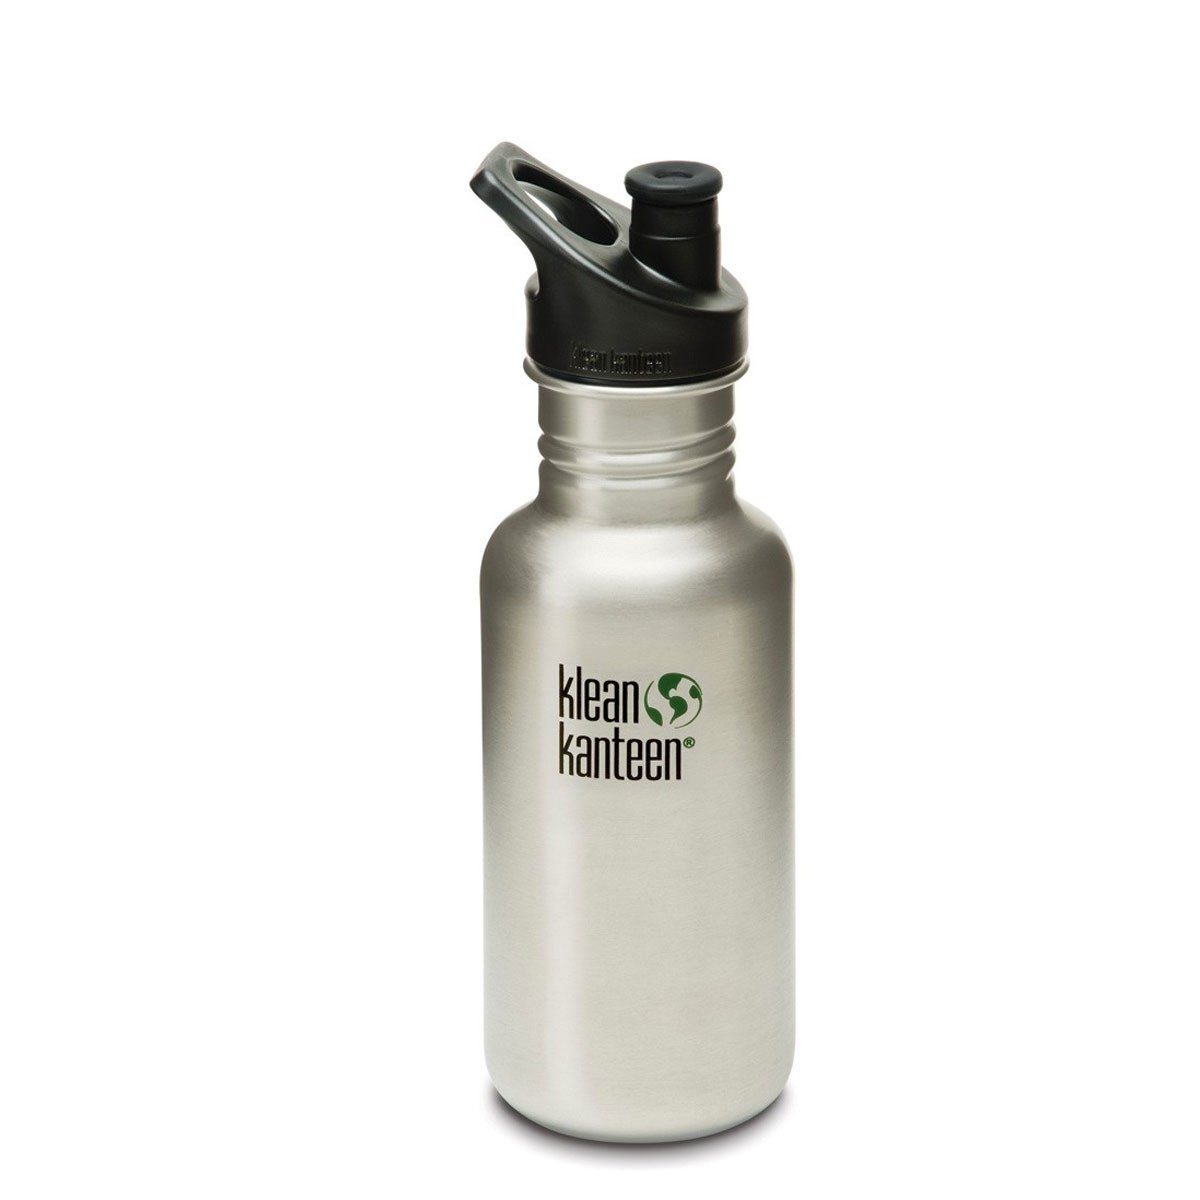 Klean Kanteen Stainless Steel Classic Water Bottle Klean Kanteen Water Bottles 532ml 18oz / Brushed Stainless at Little Earth Nest Eco Shop